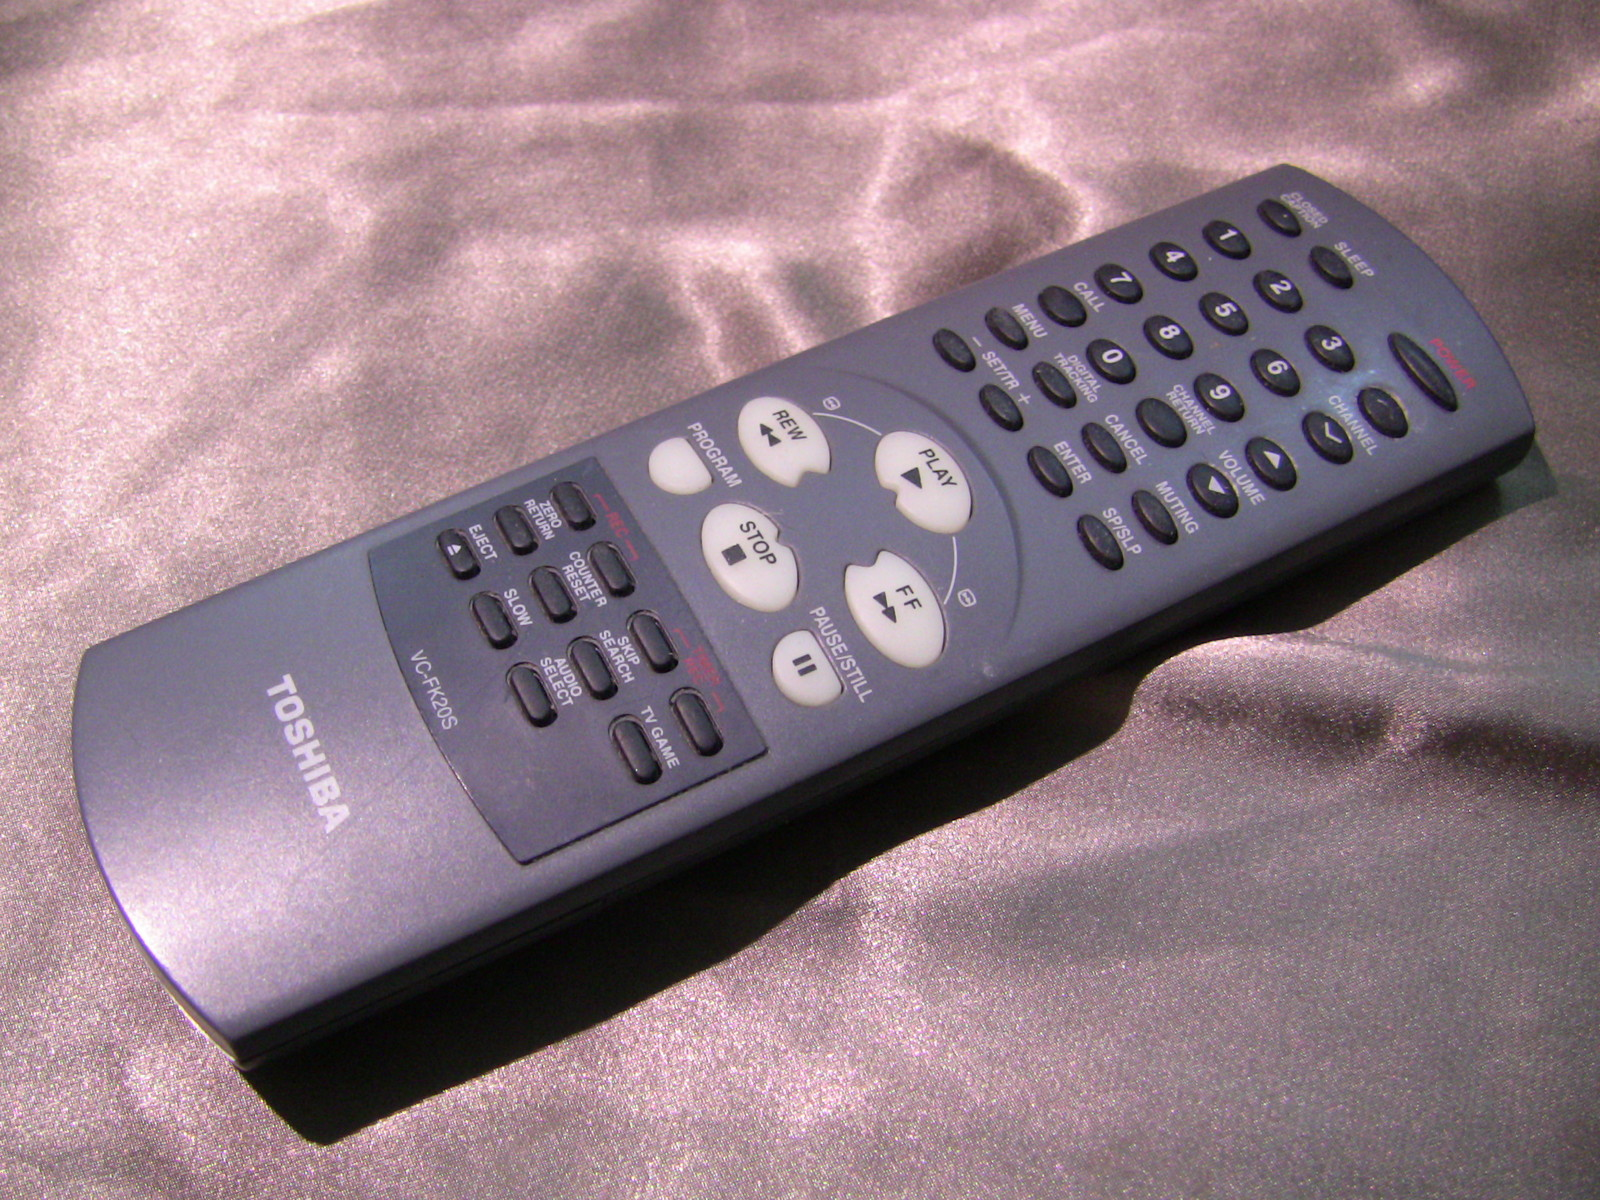 Vc Fk20 S Toshiba Tv Vcr Control Remote and 50 similar items